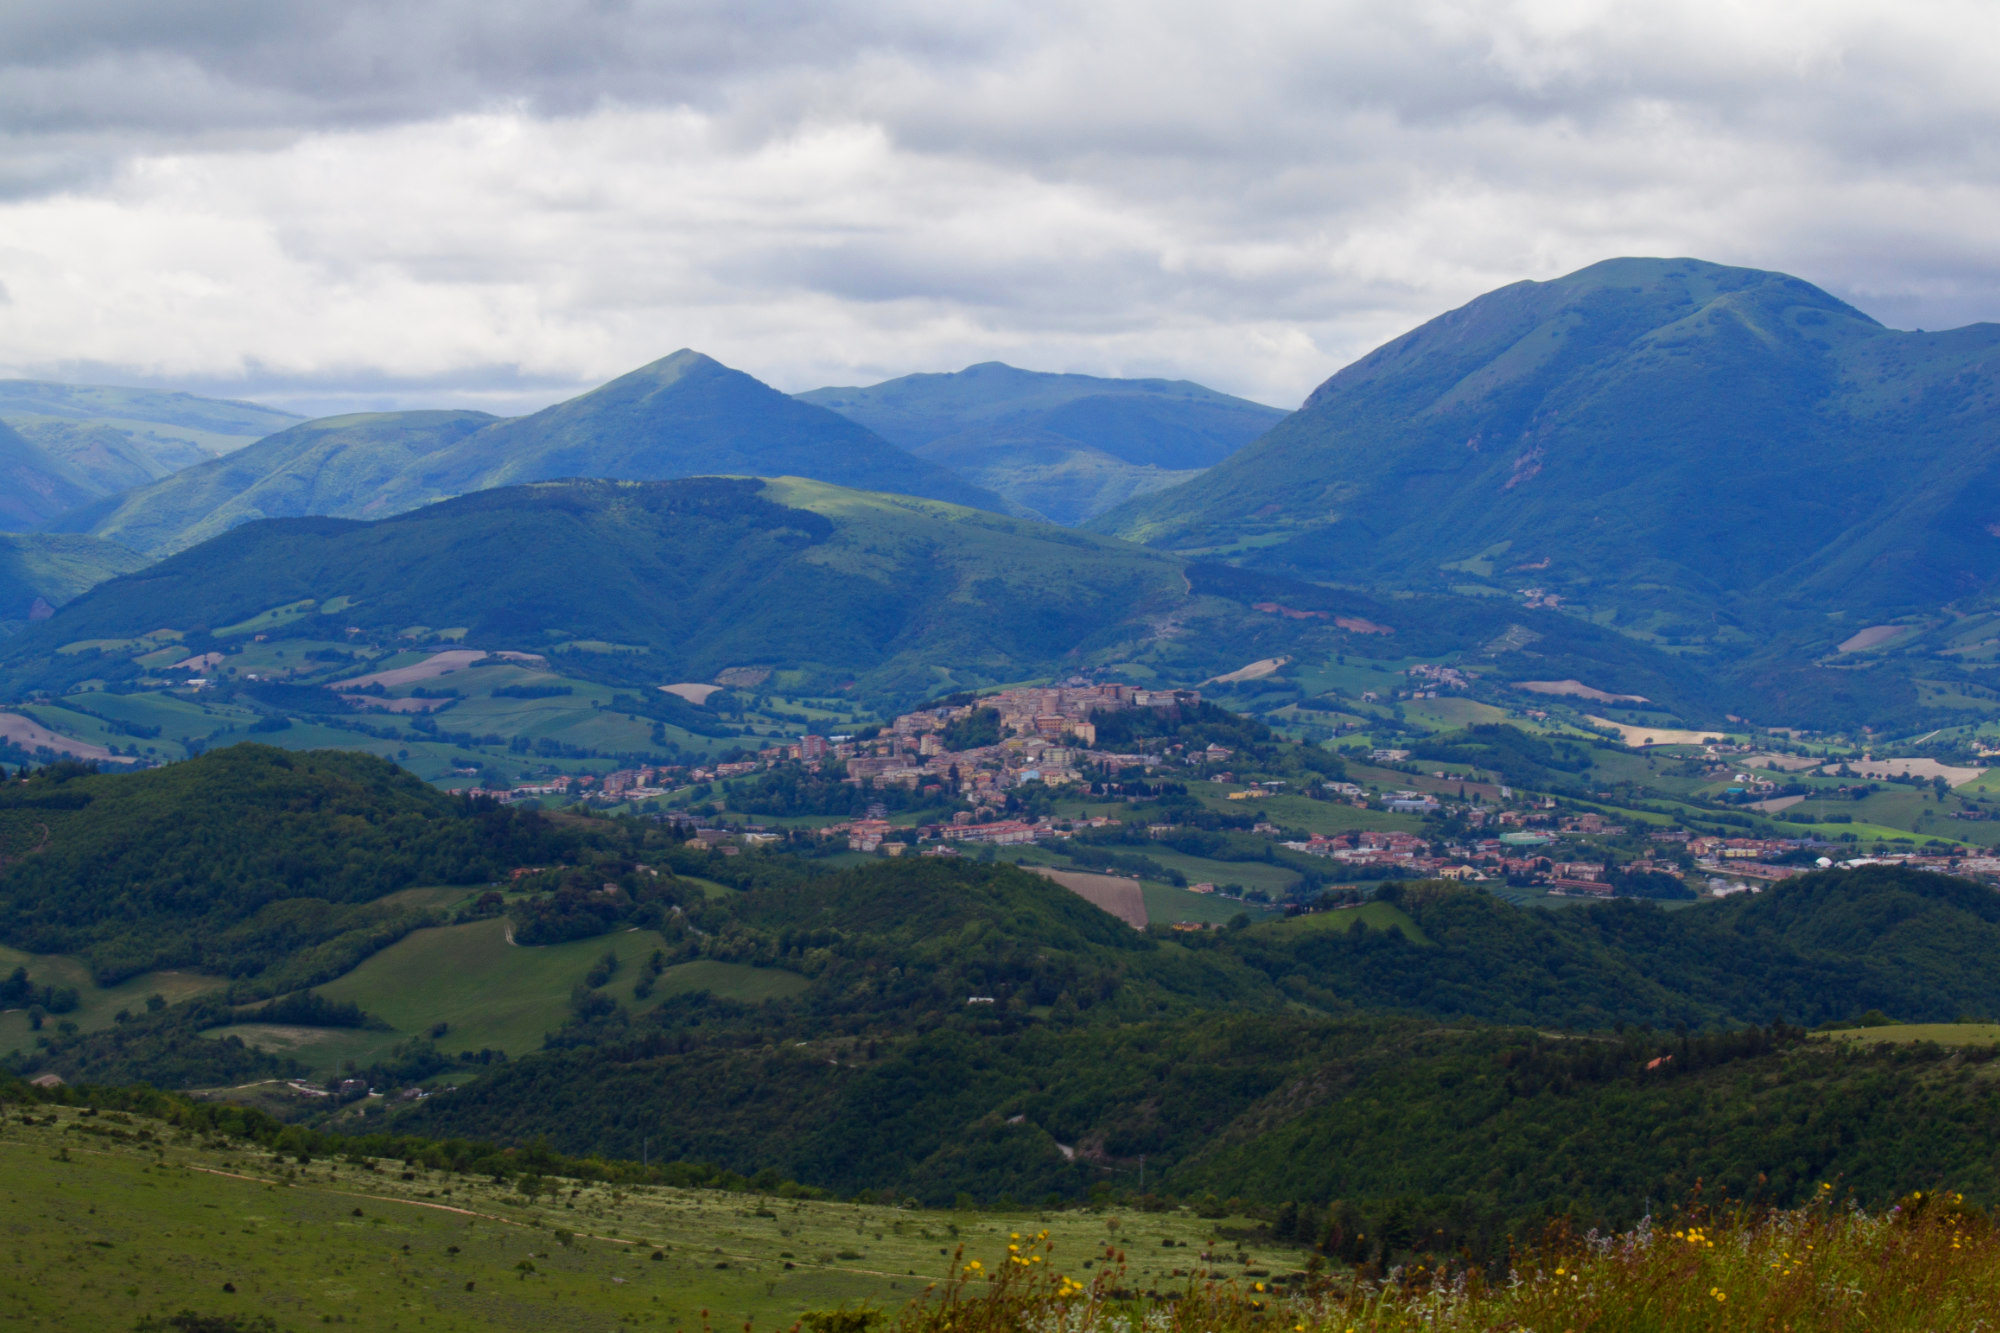 camerino from monte d'aria